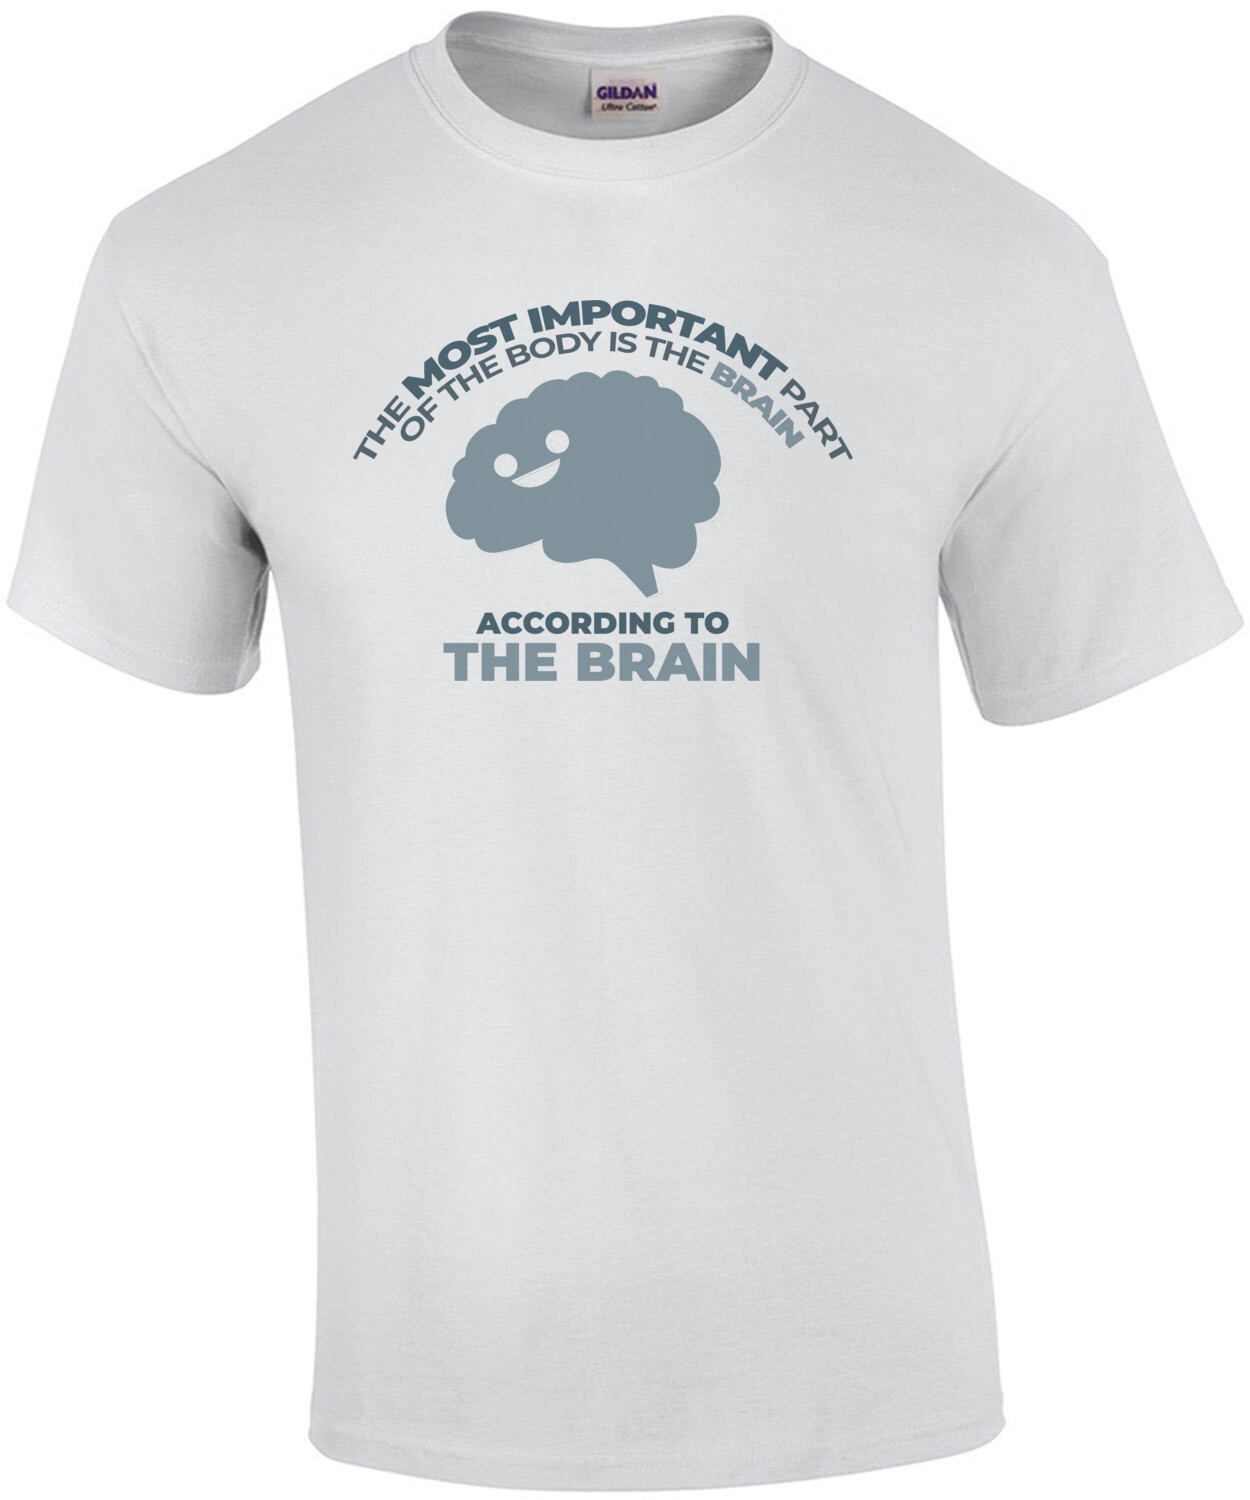 The most important part of the body is the brain - according to the brain. funny sarcasm t-shirt